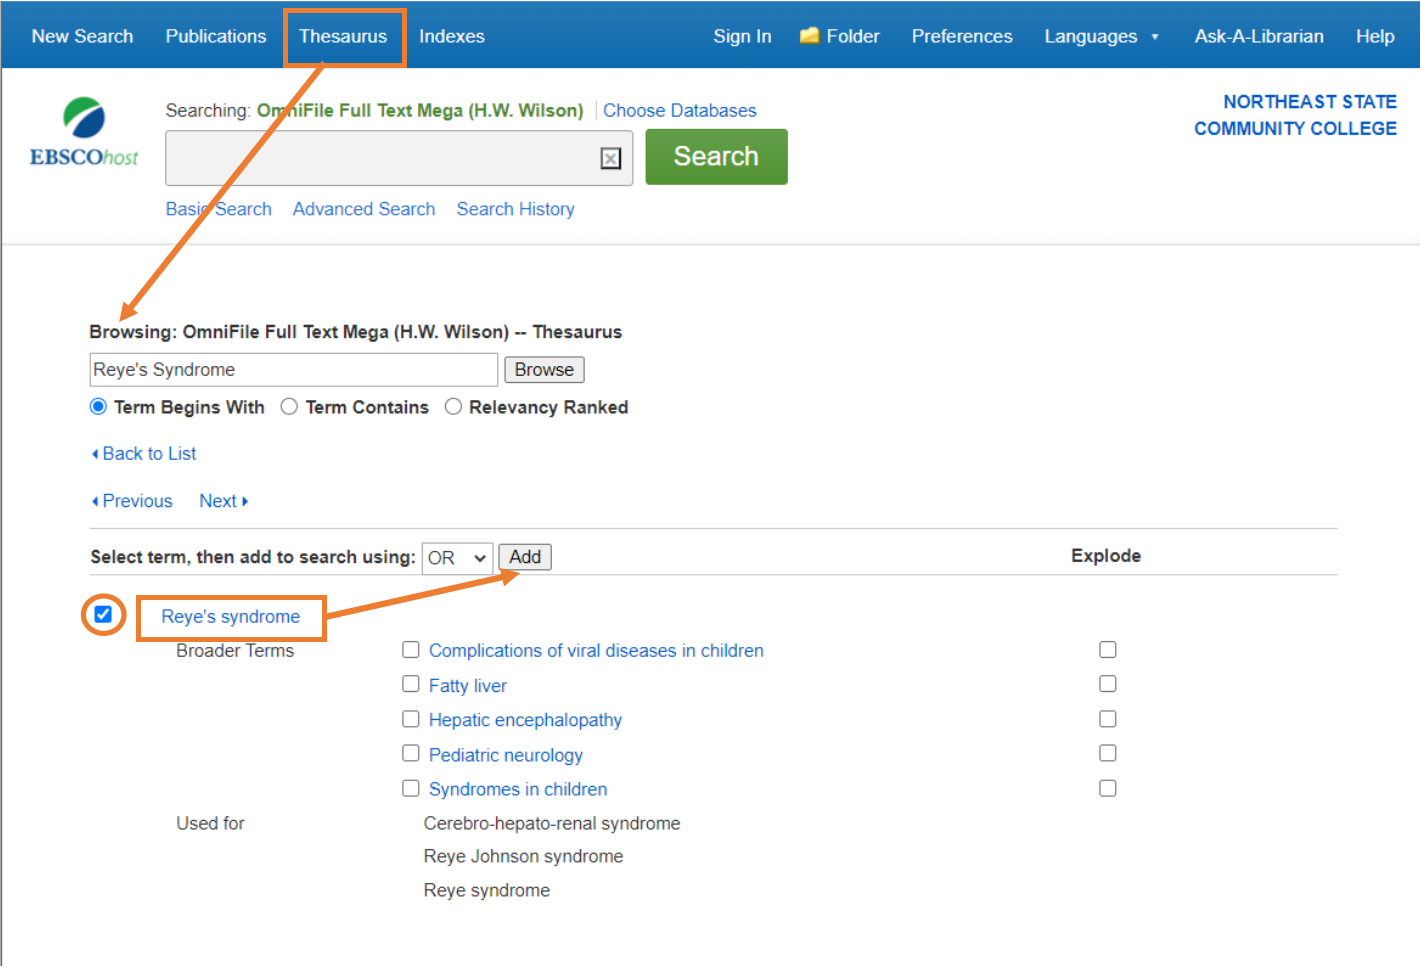 Browse the thesaurus in EBSCO databases for subject terms.  Once you find the one you want, click the check mark next to it and click on Add.